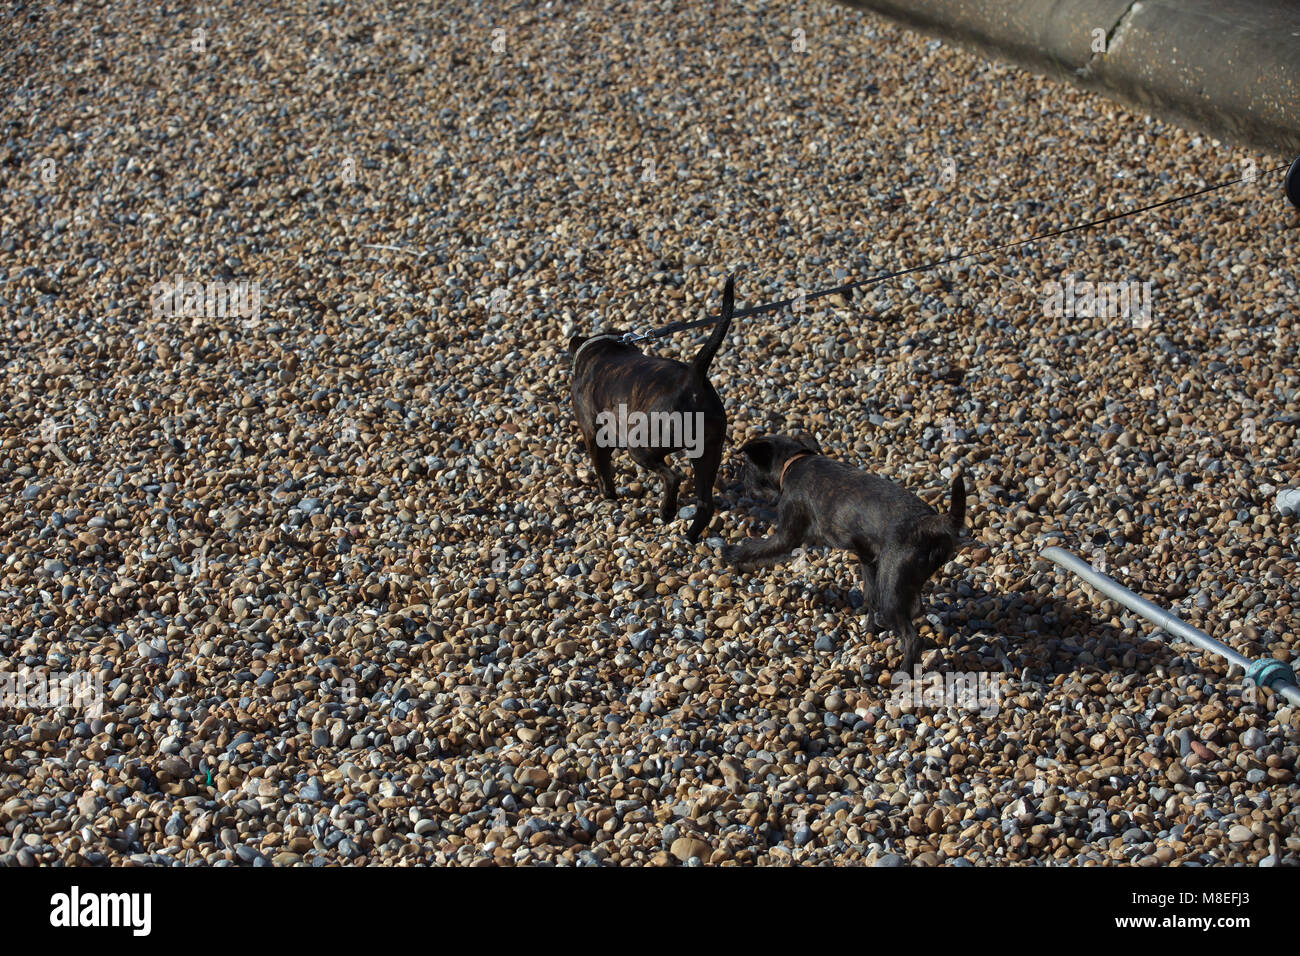 Brighton,UK,16th March 2018,Dogs walk on the beach in Brighton.credit Keith Larby/Alamy Live News - Stock Image